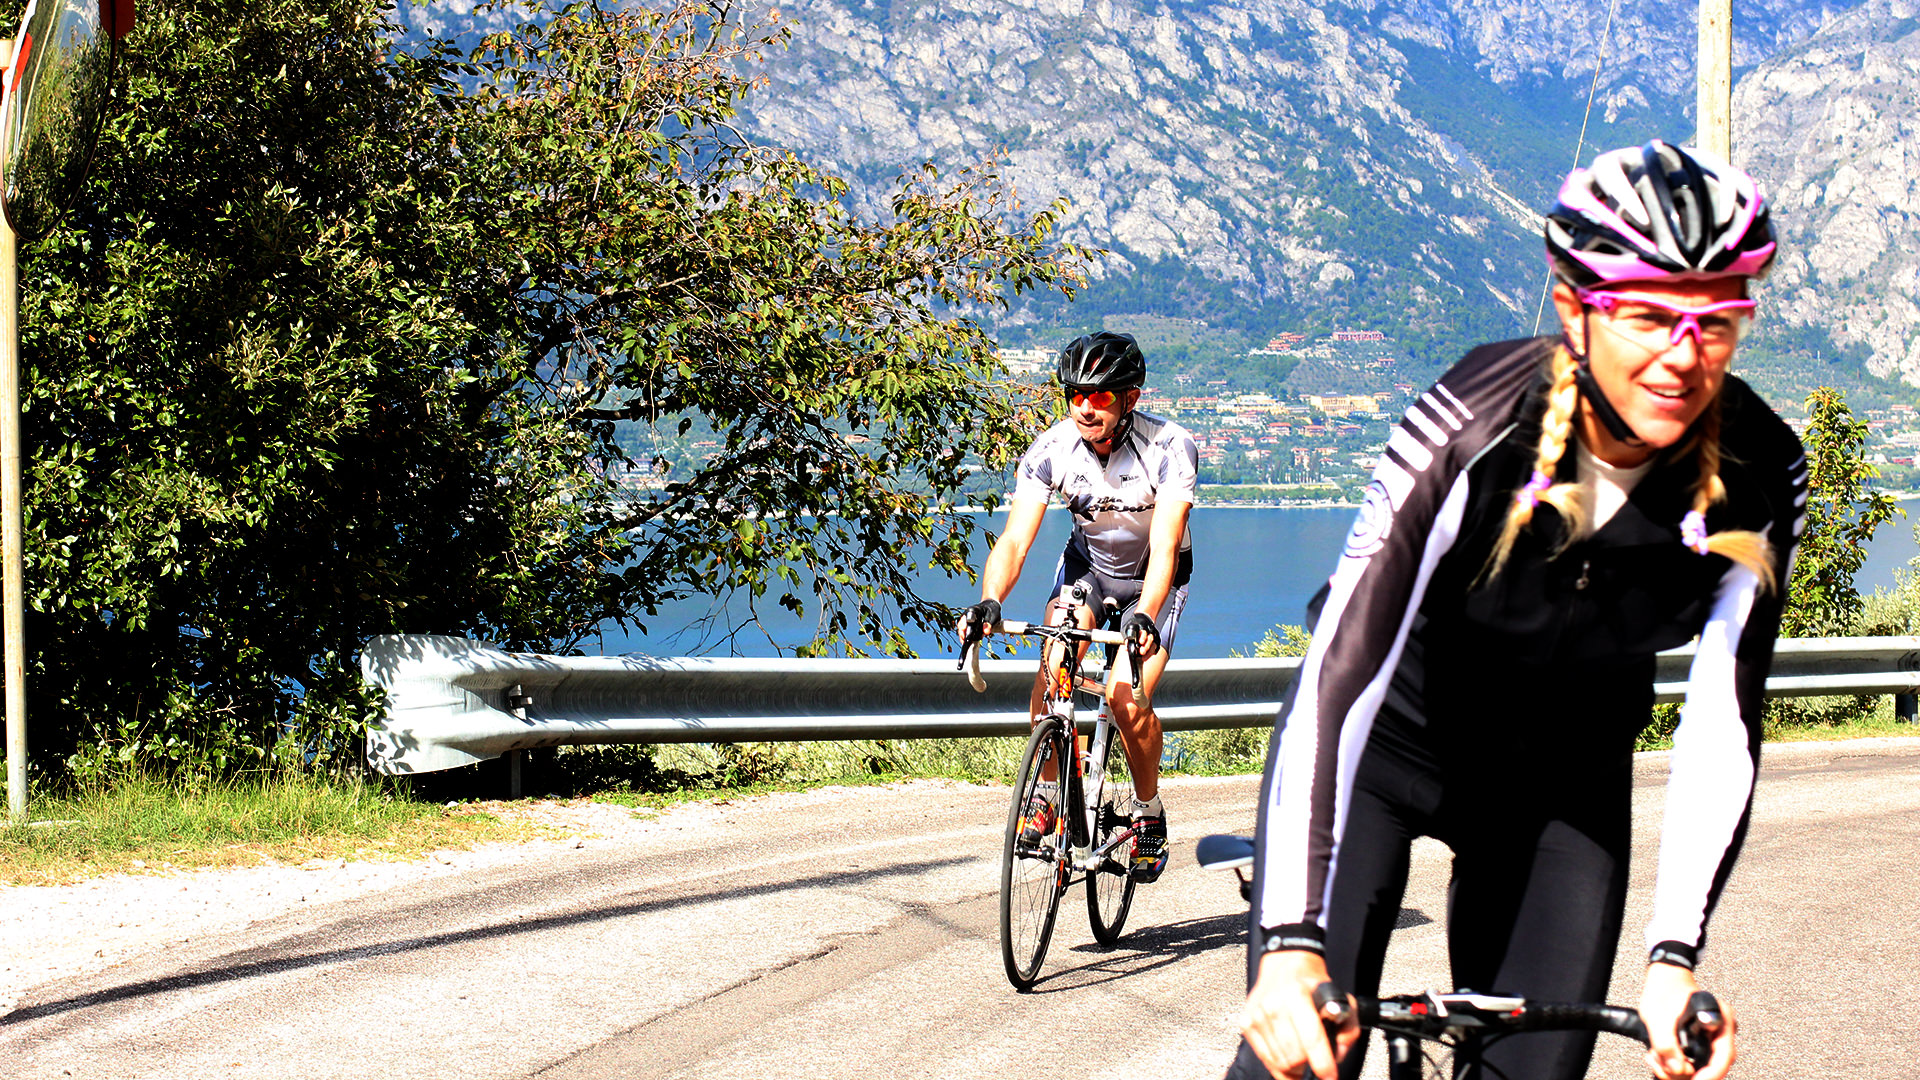 Sportive cycle holiday page header image